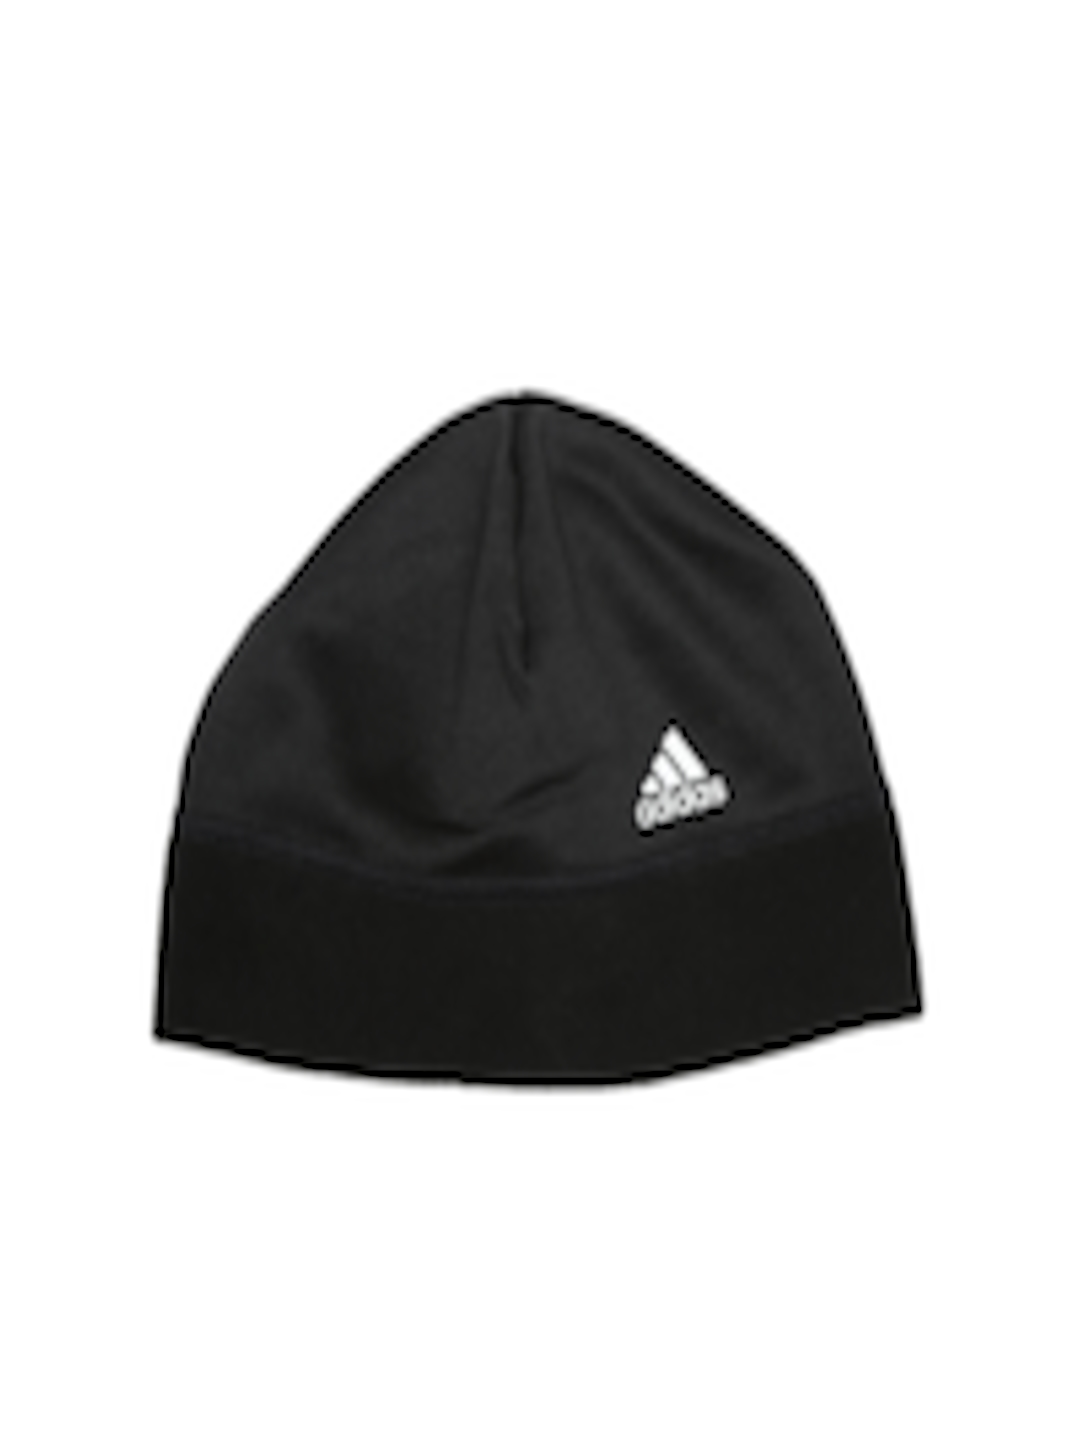 d1c9233af Buy ADIDAS Unisex Black ClimaWarm Fleece Solid Beanie - - Accessories for  Unisex